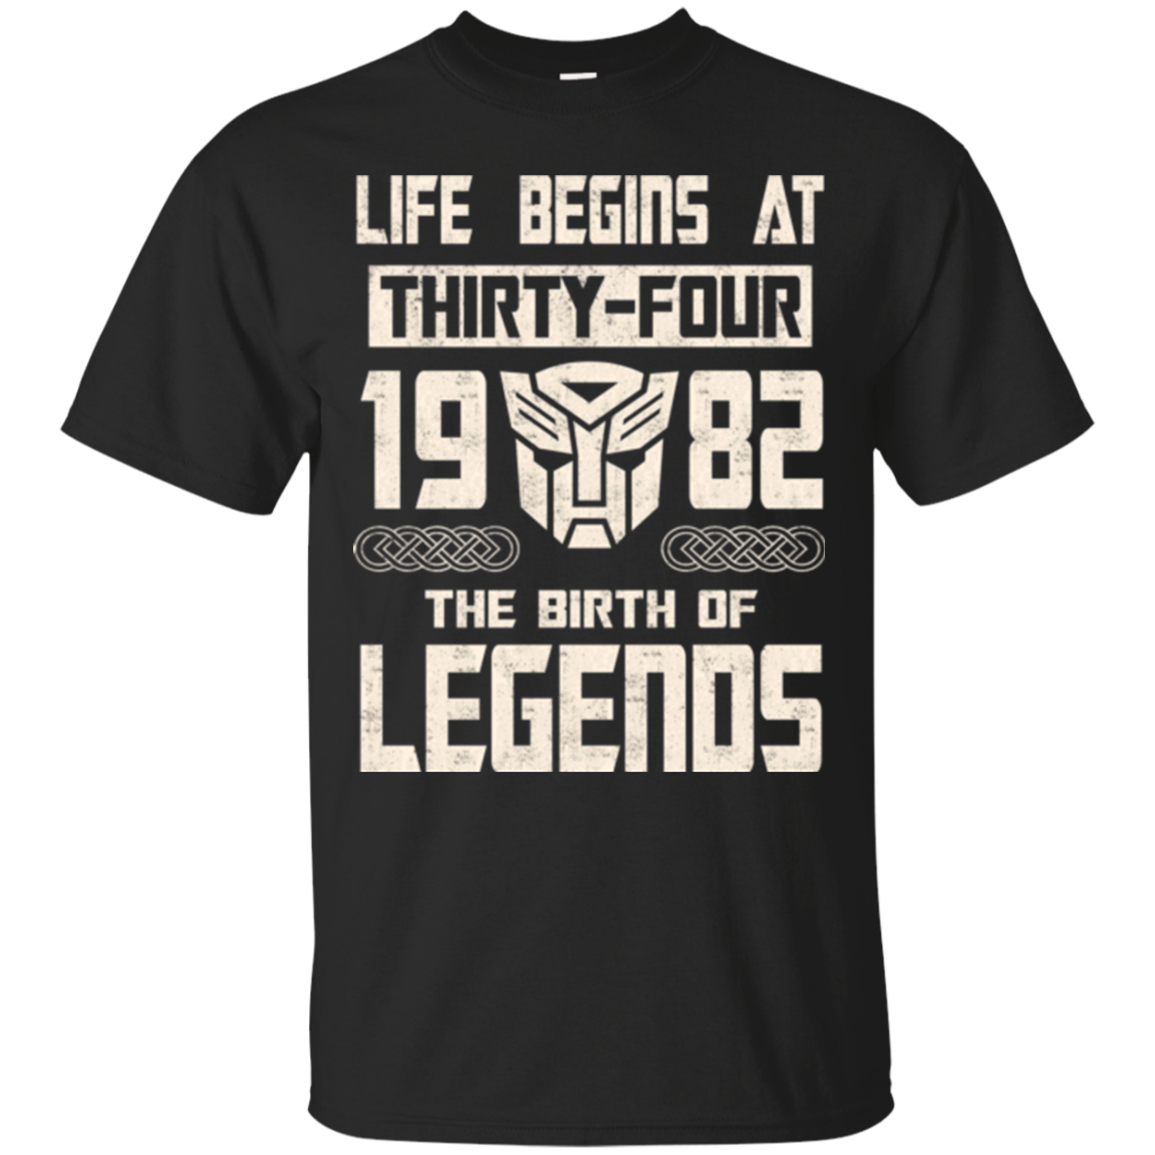 1982 Shirts The Birth Of Legends  Hoodies Sweatshirts